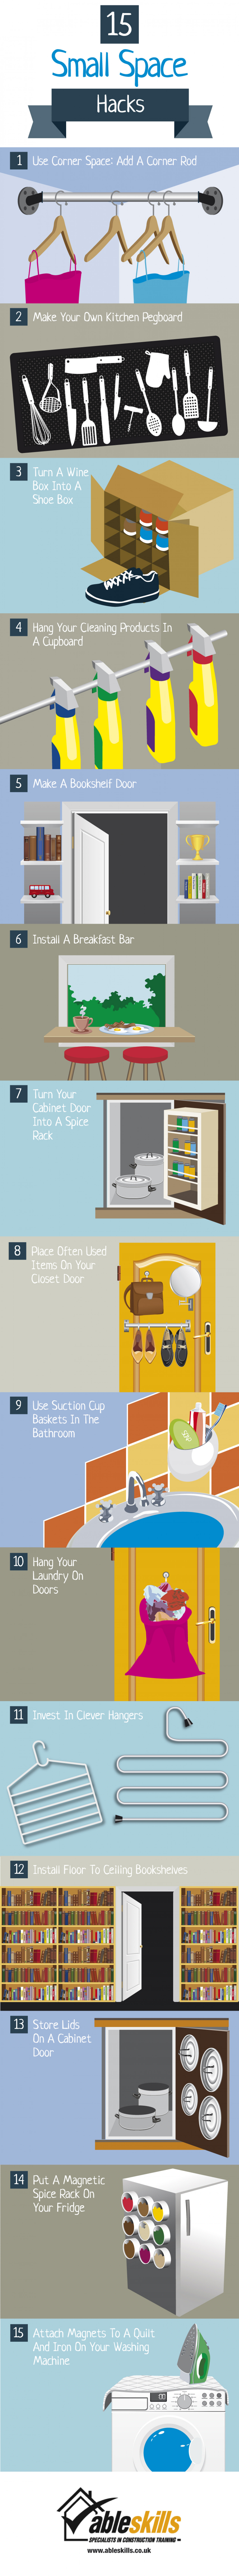 15 Small Space Hacks Infographic